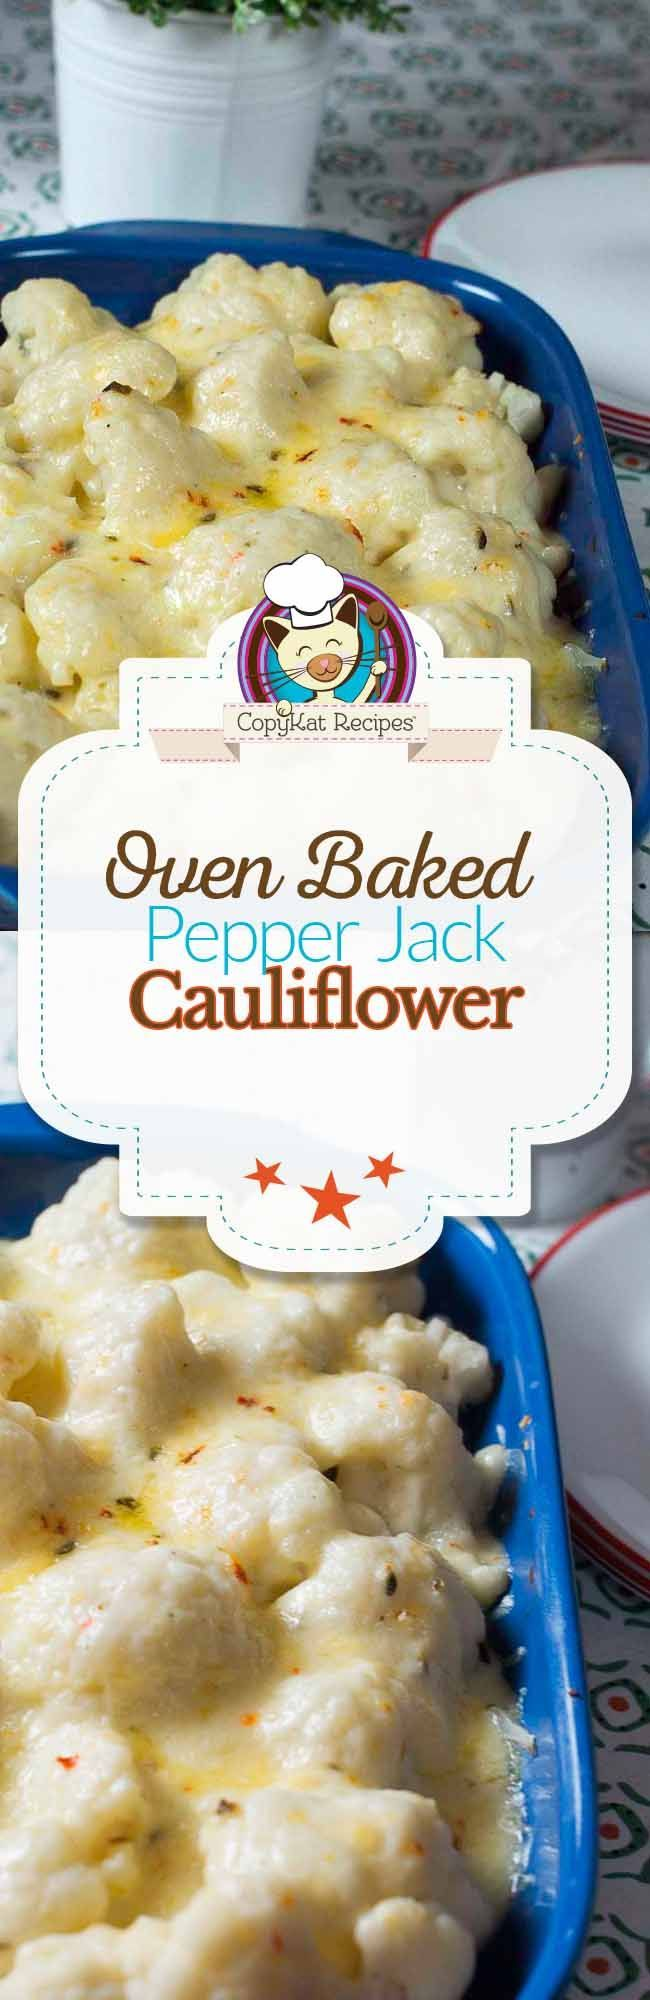 Cauliflower is baked in the oven with a Pepper Jack cheese sauce. You will love this recipe it makes a great side dish for dinner.